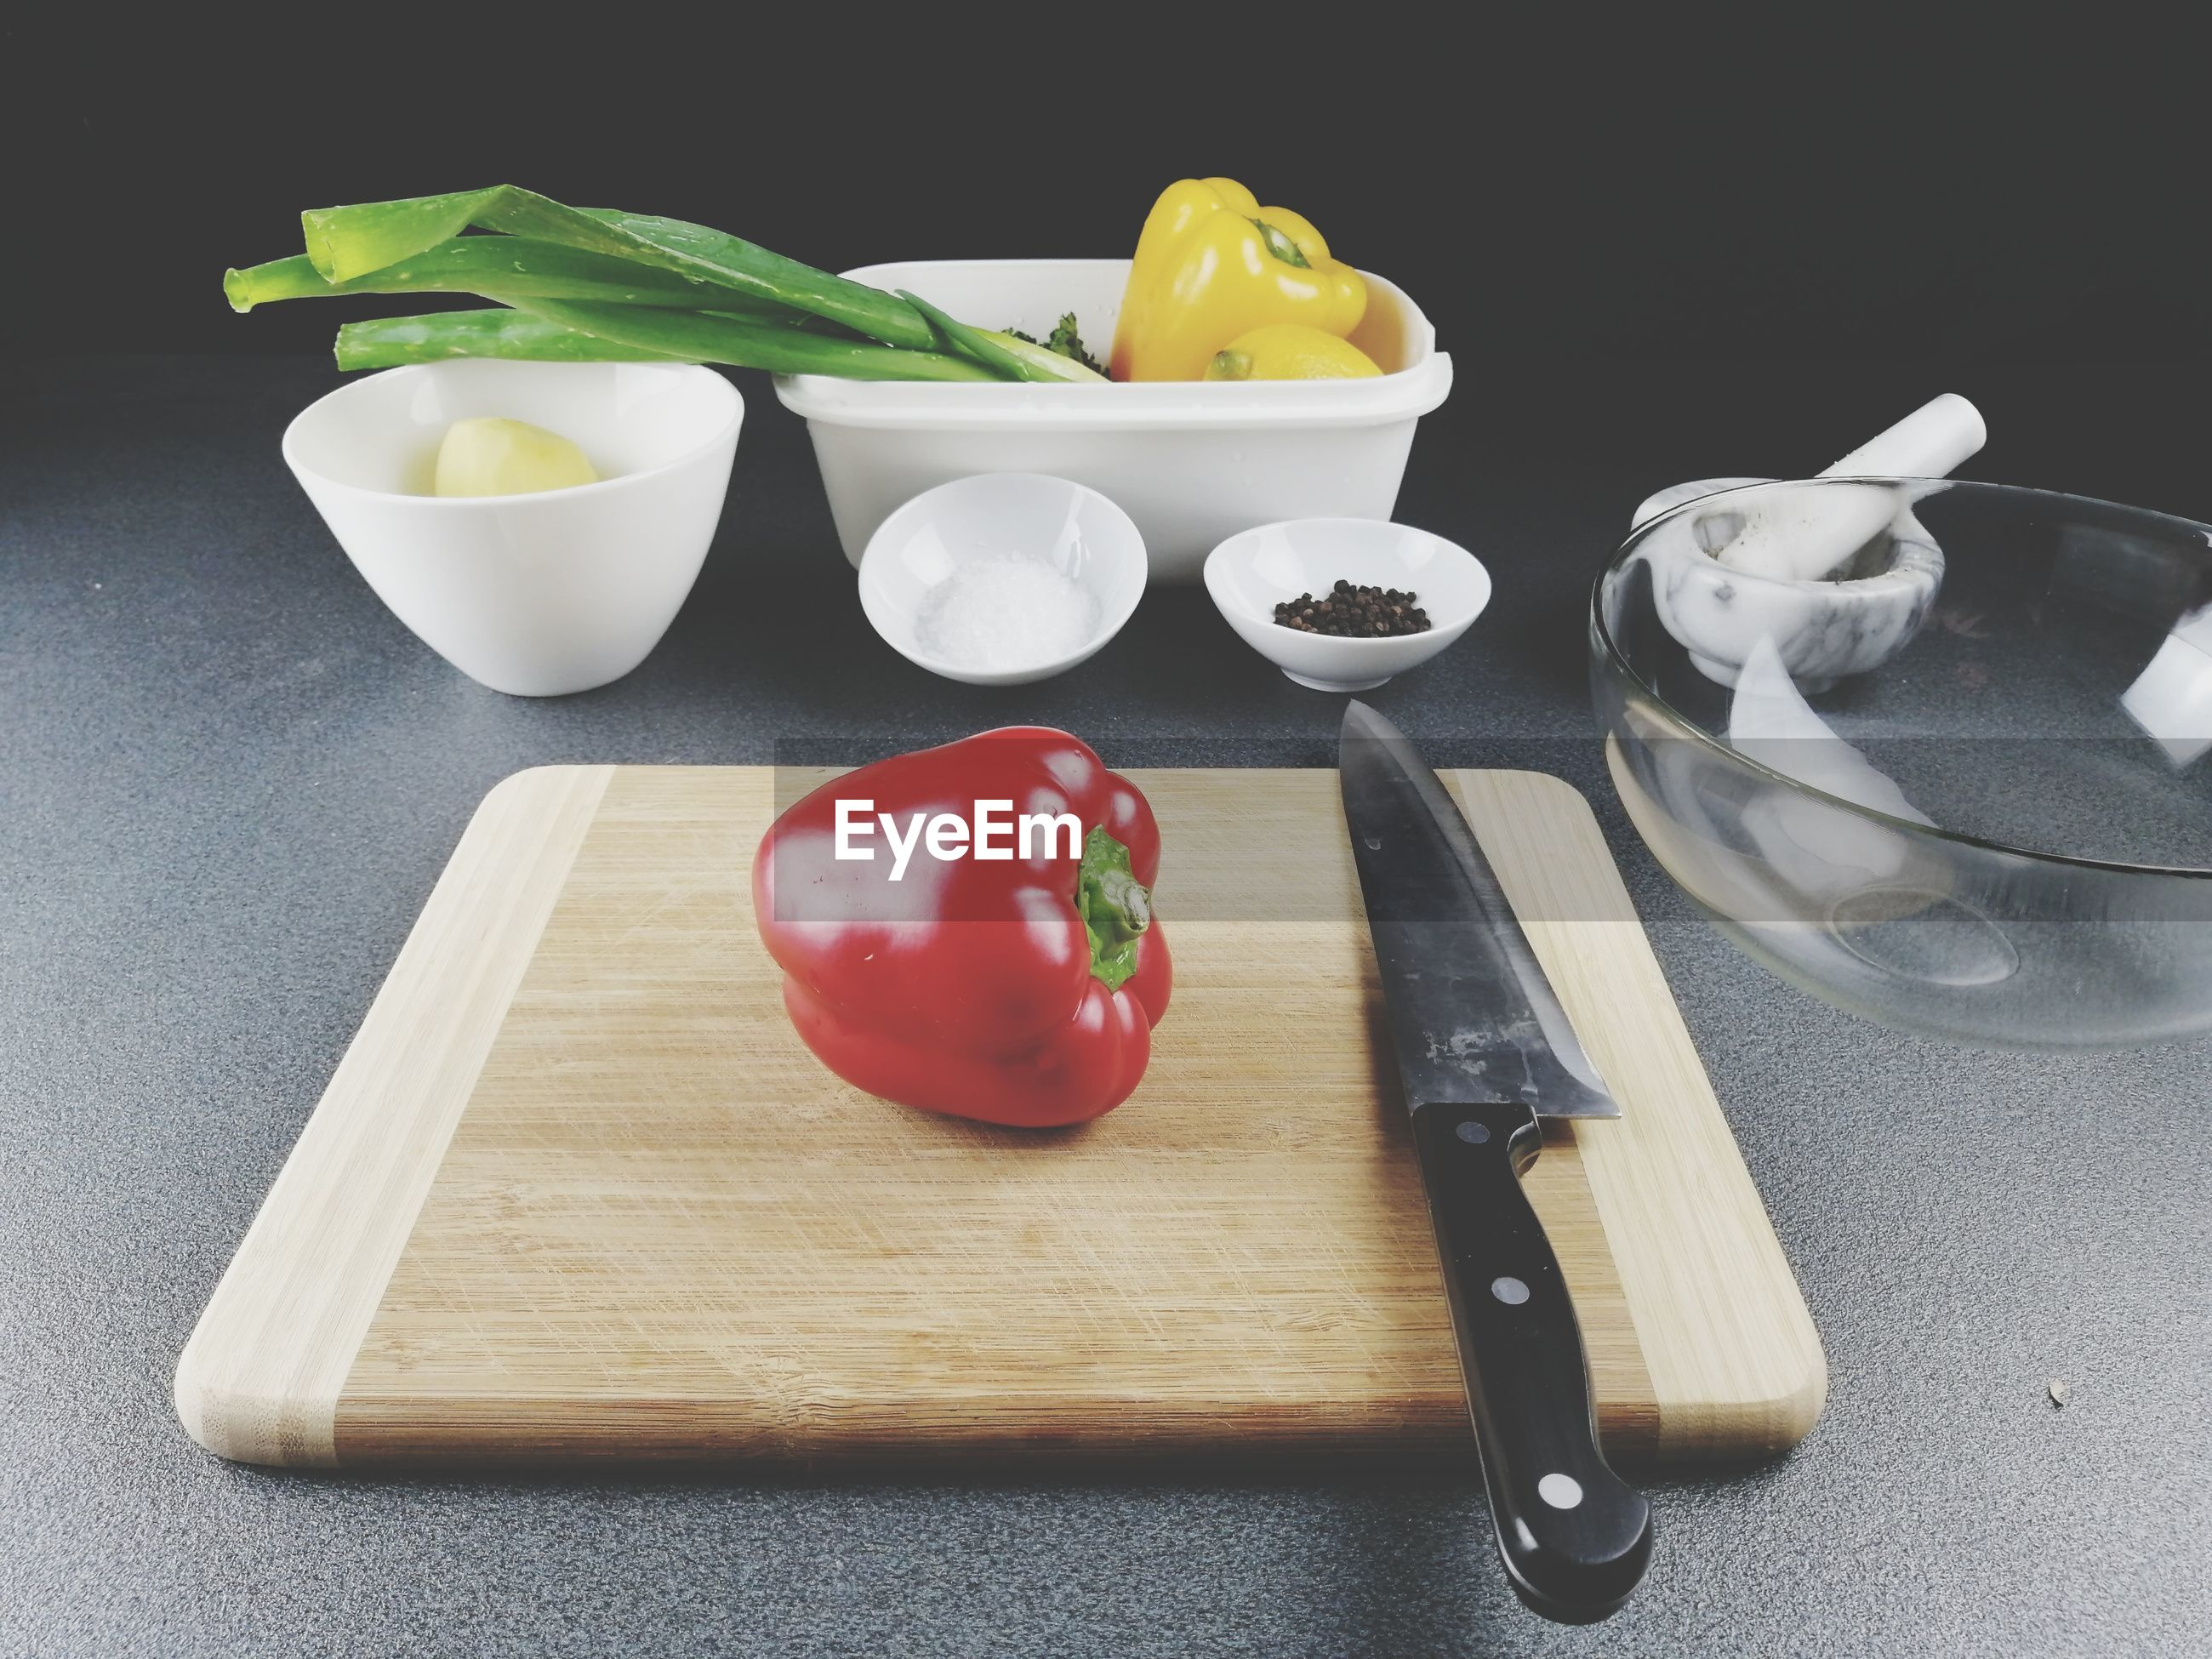 CLOSE-UP OF BREAKFAST SERVED ON CUTTING BOARD ON TABLE